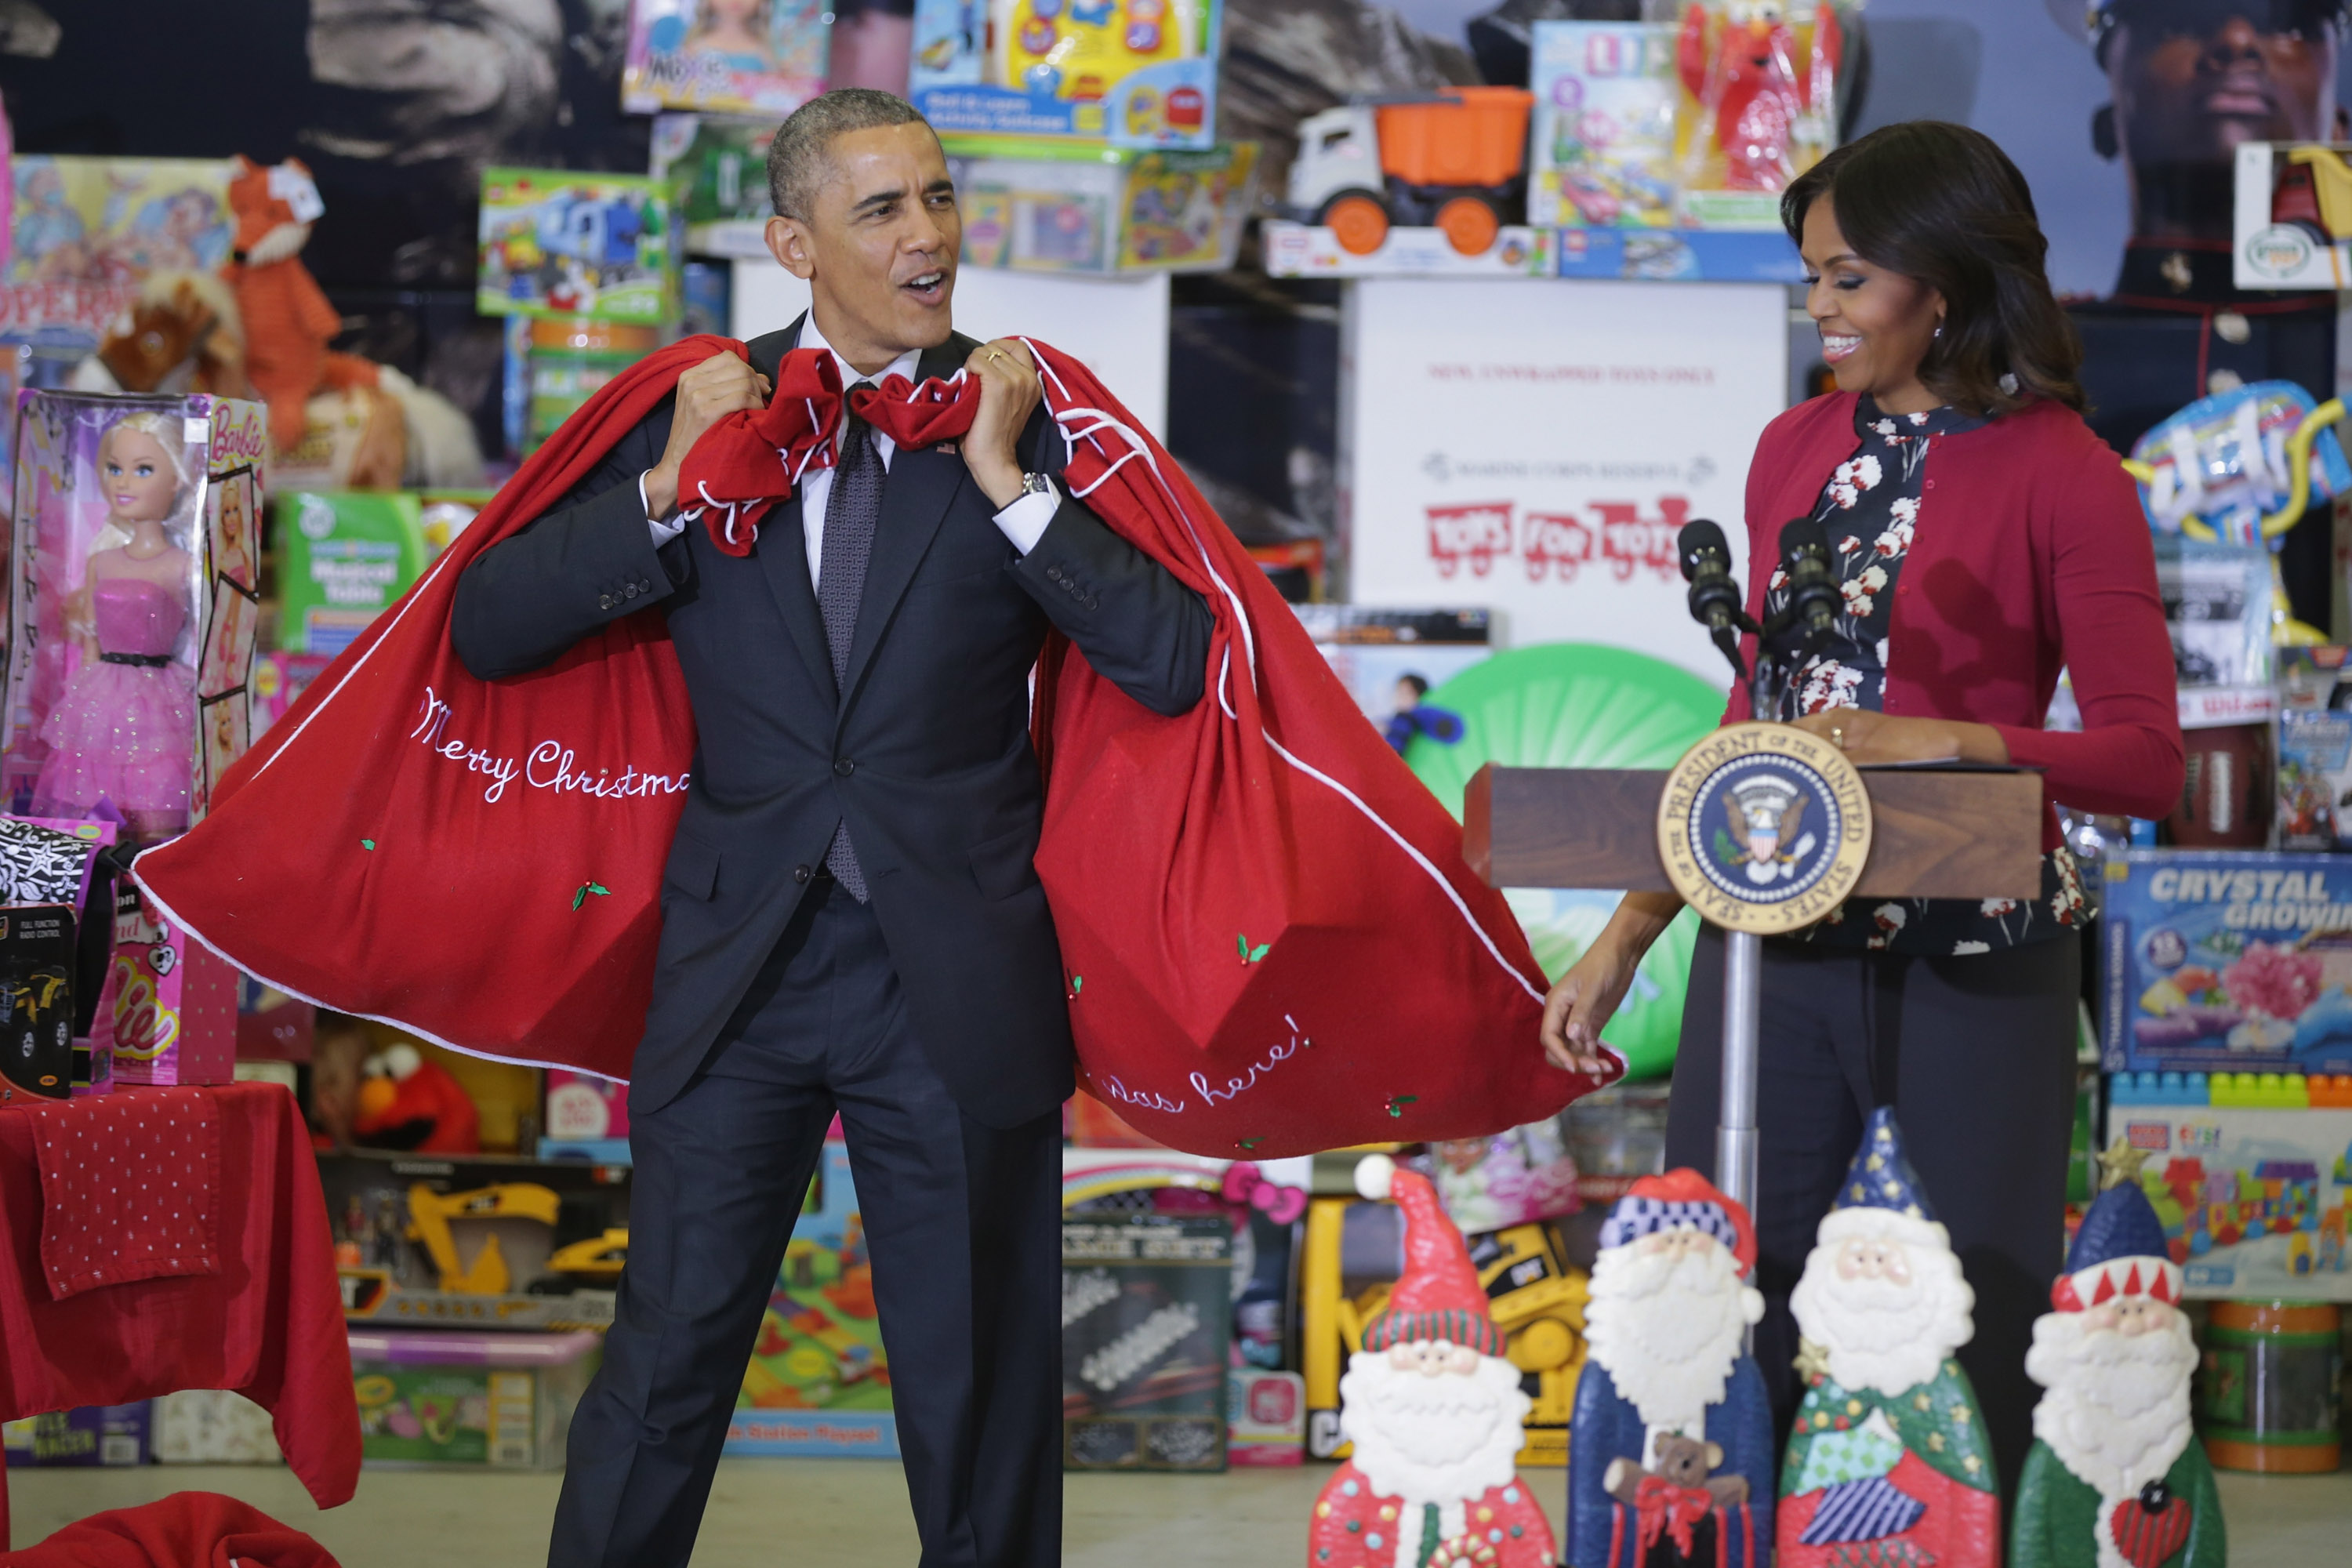 WASHINGTON, DC - DECEMBER 10: U.S. President Barack Obama (L) and first lady Michelle Obama deliver toys and gifts donated by Executive Office of the President staff to the Marine Corps Reserve Toys for Tots Program at Joint Base Anacostia-Bolling on December 10, 2014 in Washington, DC. For 67 years the Toys for Tots program has worked with local communities to collect and distribute toys and gifts for less fortunate children throughout the United States. (Photo by Chip Somodevilla/Getty Images)